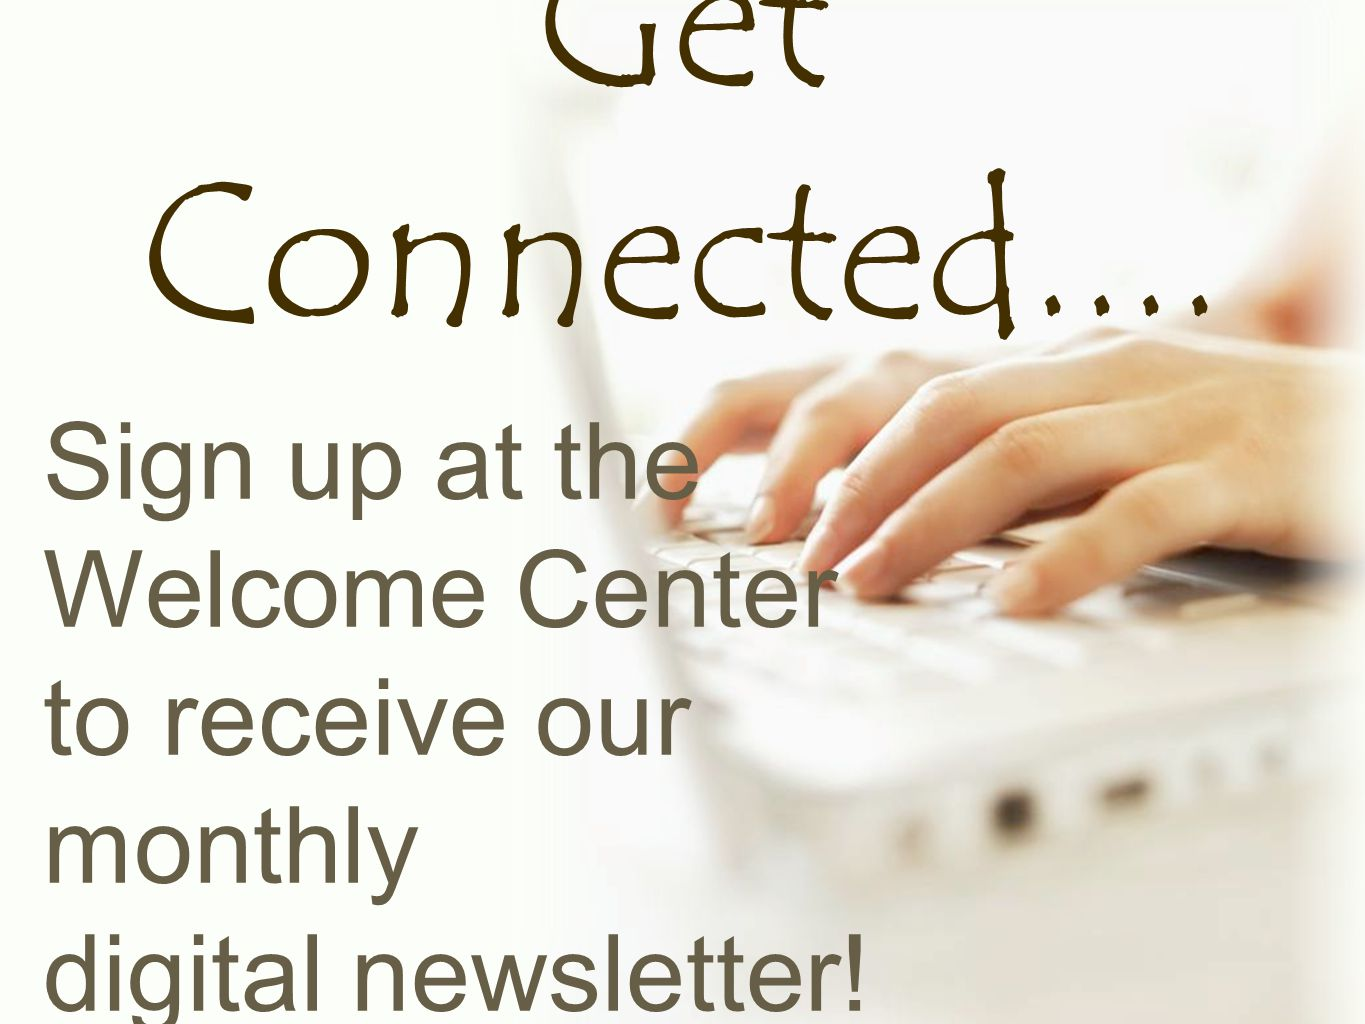 Get Connected.... Sign up at the Welcome Center to receive our monthly